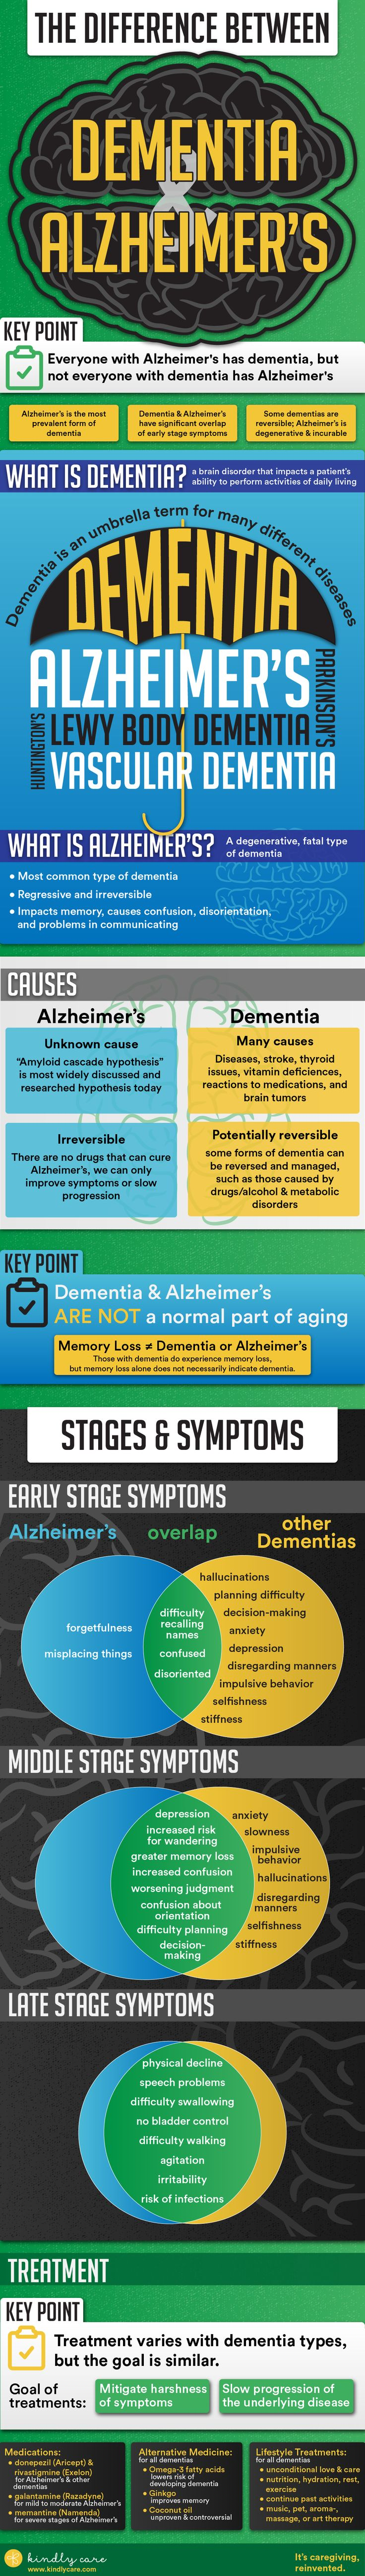 "Below are instructions on how to share the infographic associated with this article: Dementia and Alzheimer's Activities – Ideas for Stimulation and Fun Share this infographic on your social media: Share this infographic on your site: <p>Please include attribution to <a href=""https://www.kindlycare.com/"">https://www.kindlycare.com/</a> with this infographic.</p><p><a href=""https://www.k..."